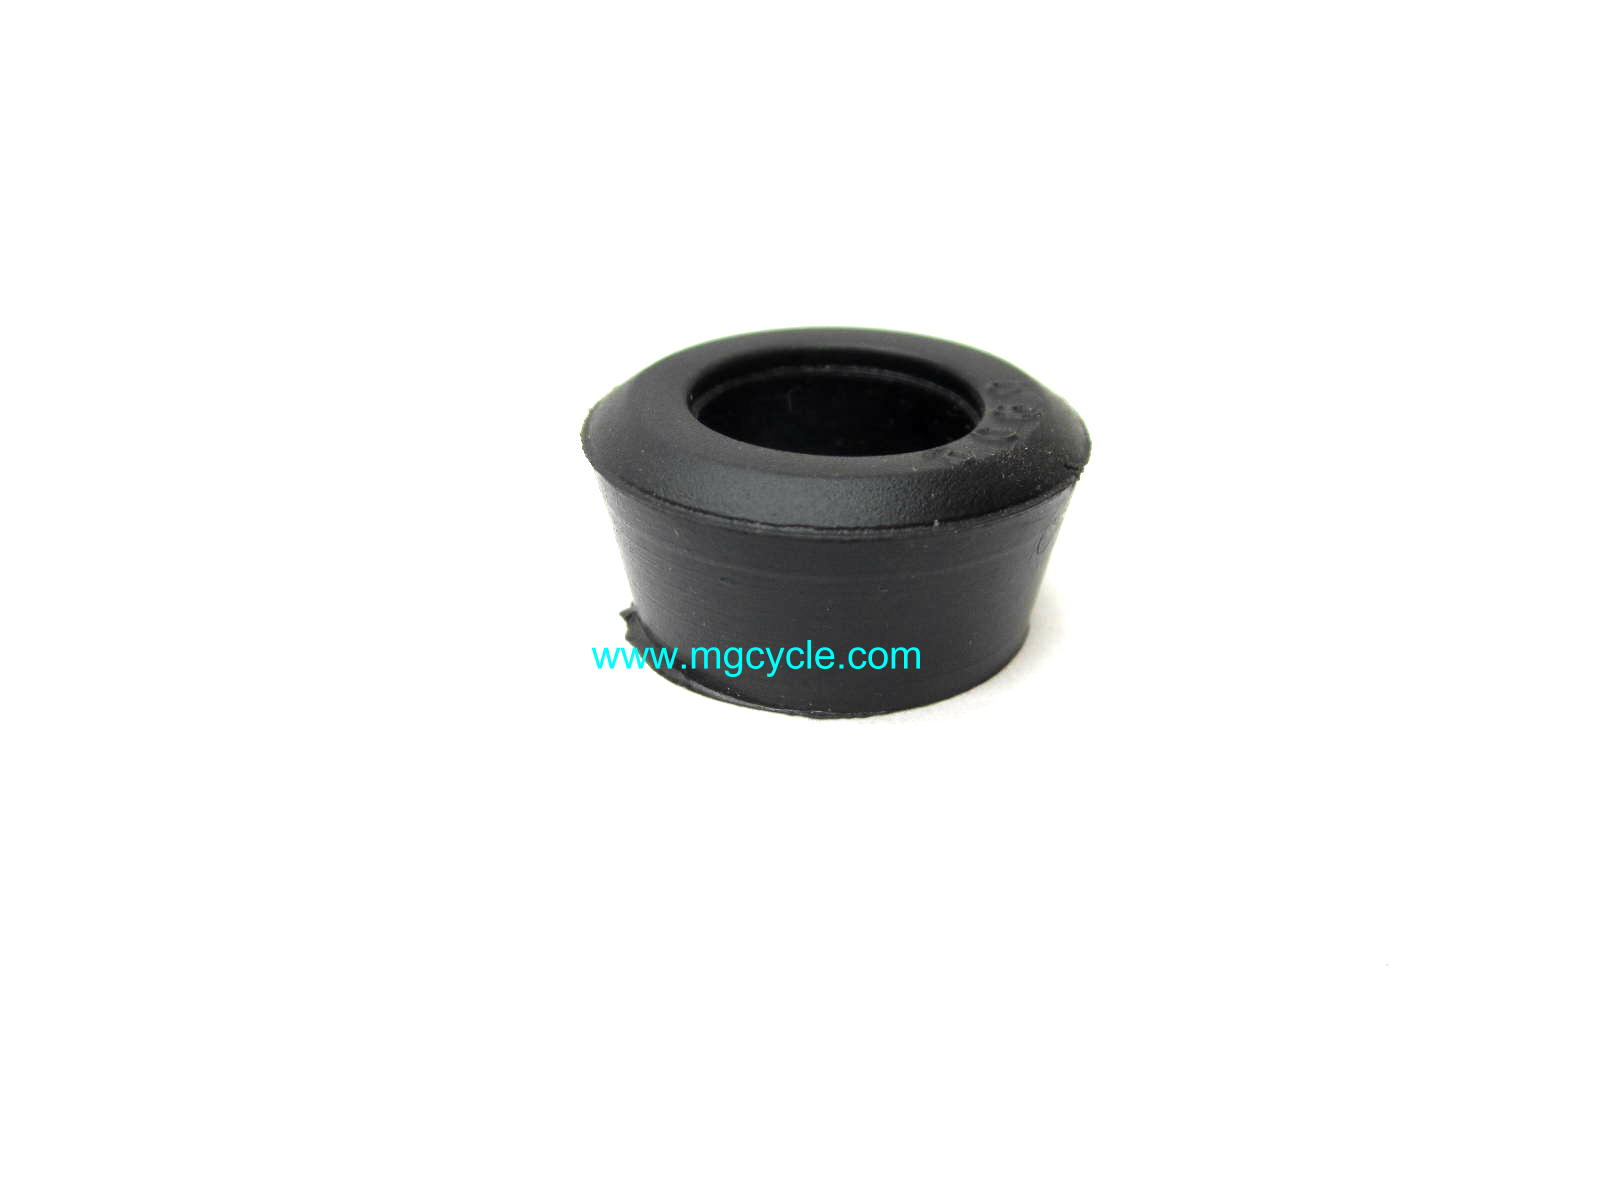 Rubber shock bushing T T3 G5 SP LeMans 1/2 Amb Eld V700